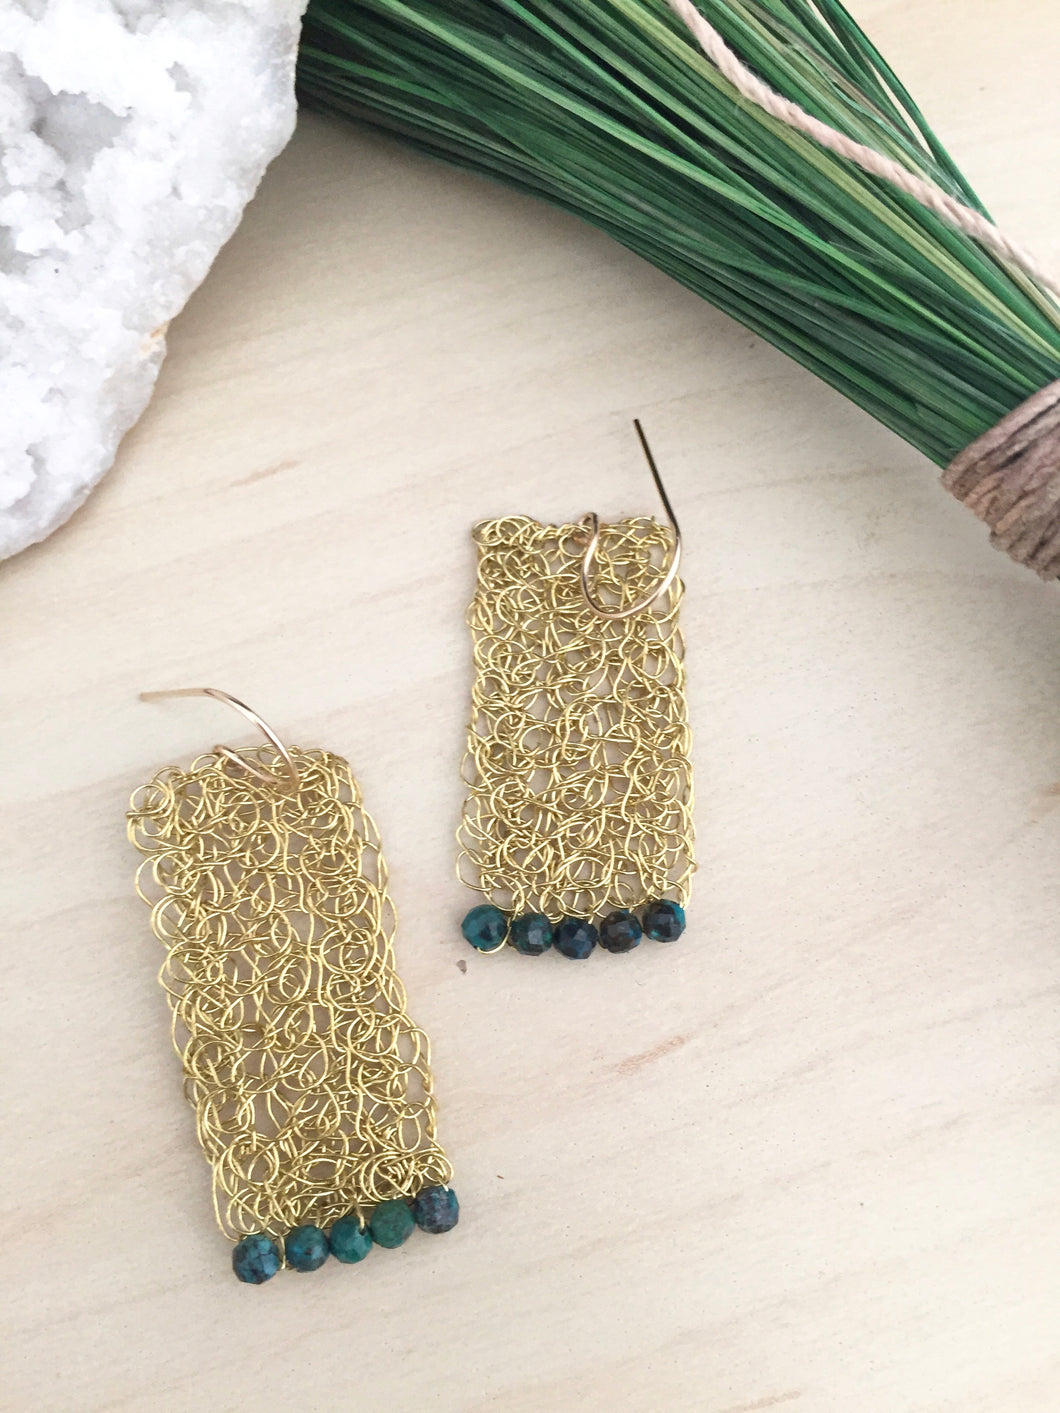 Gold tone brass wire crochet rectangle earrings with chrysocholla gemstone beading detail and 14k gold fill ear wires